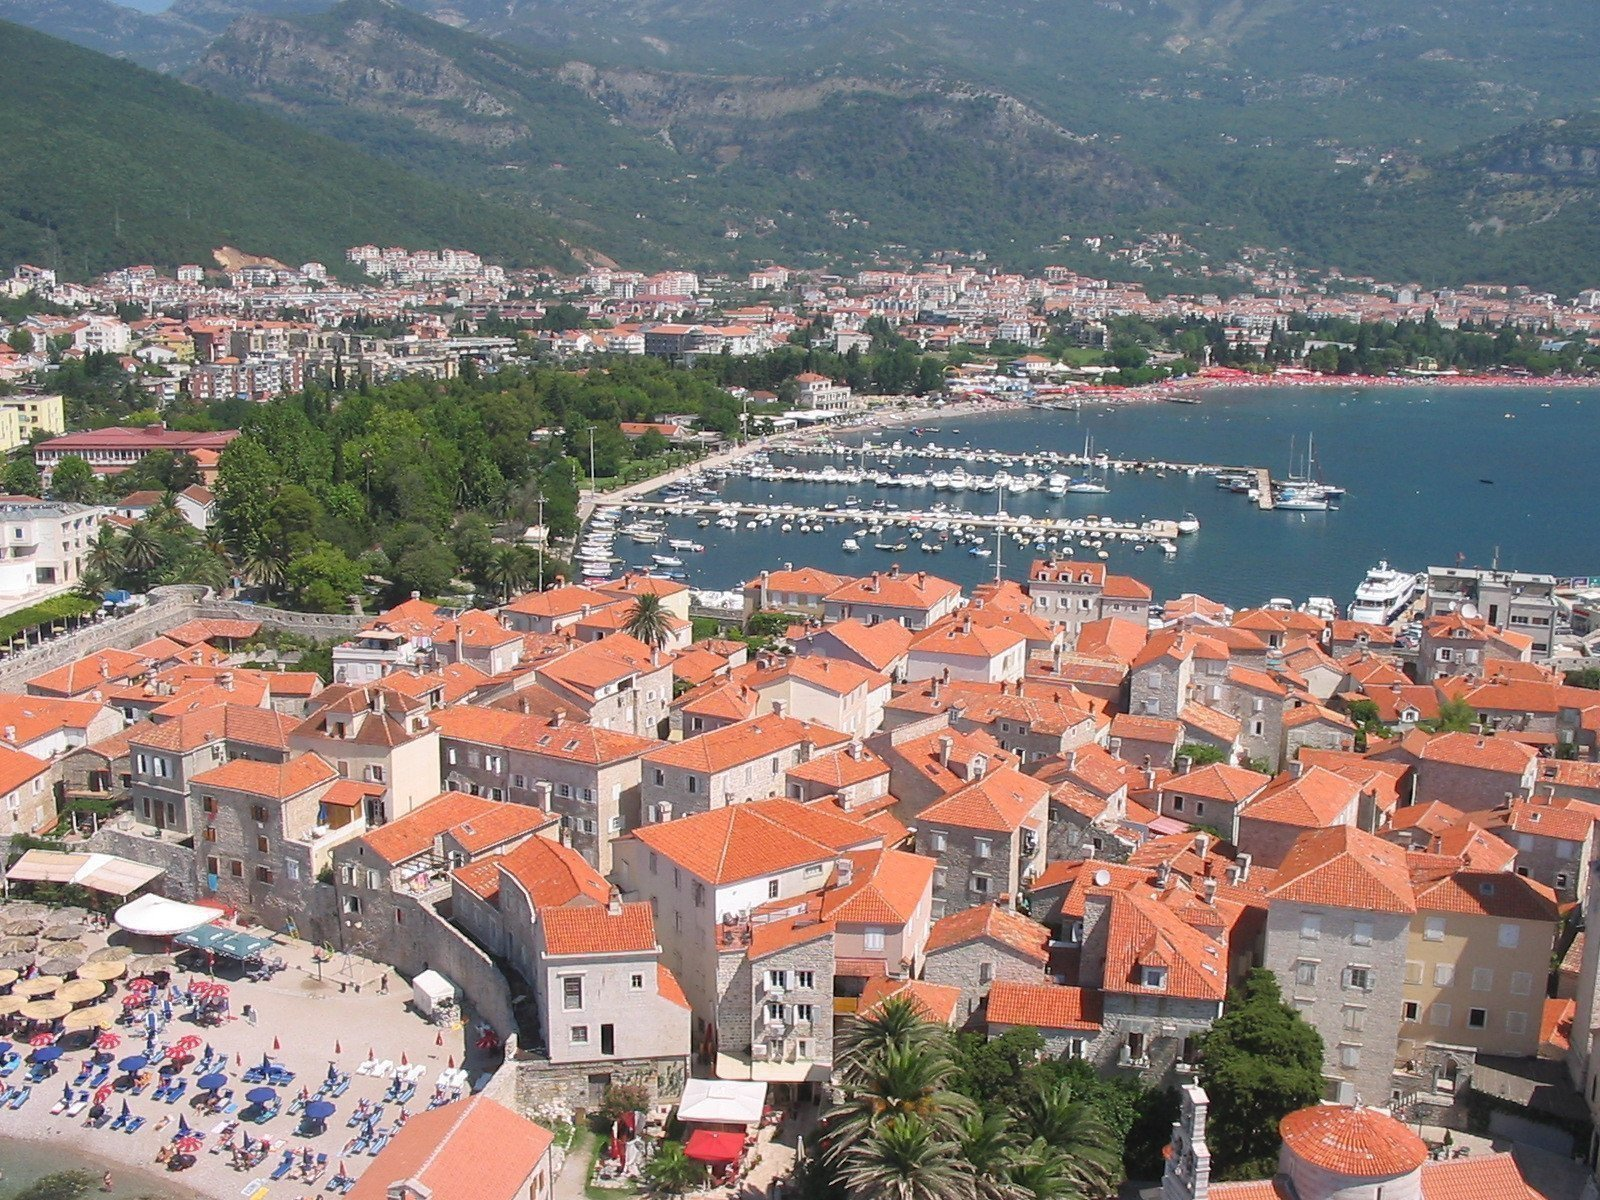 Sale property abroad Apartment in Budva